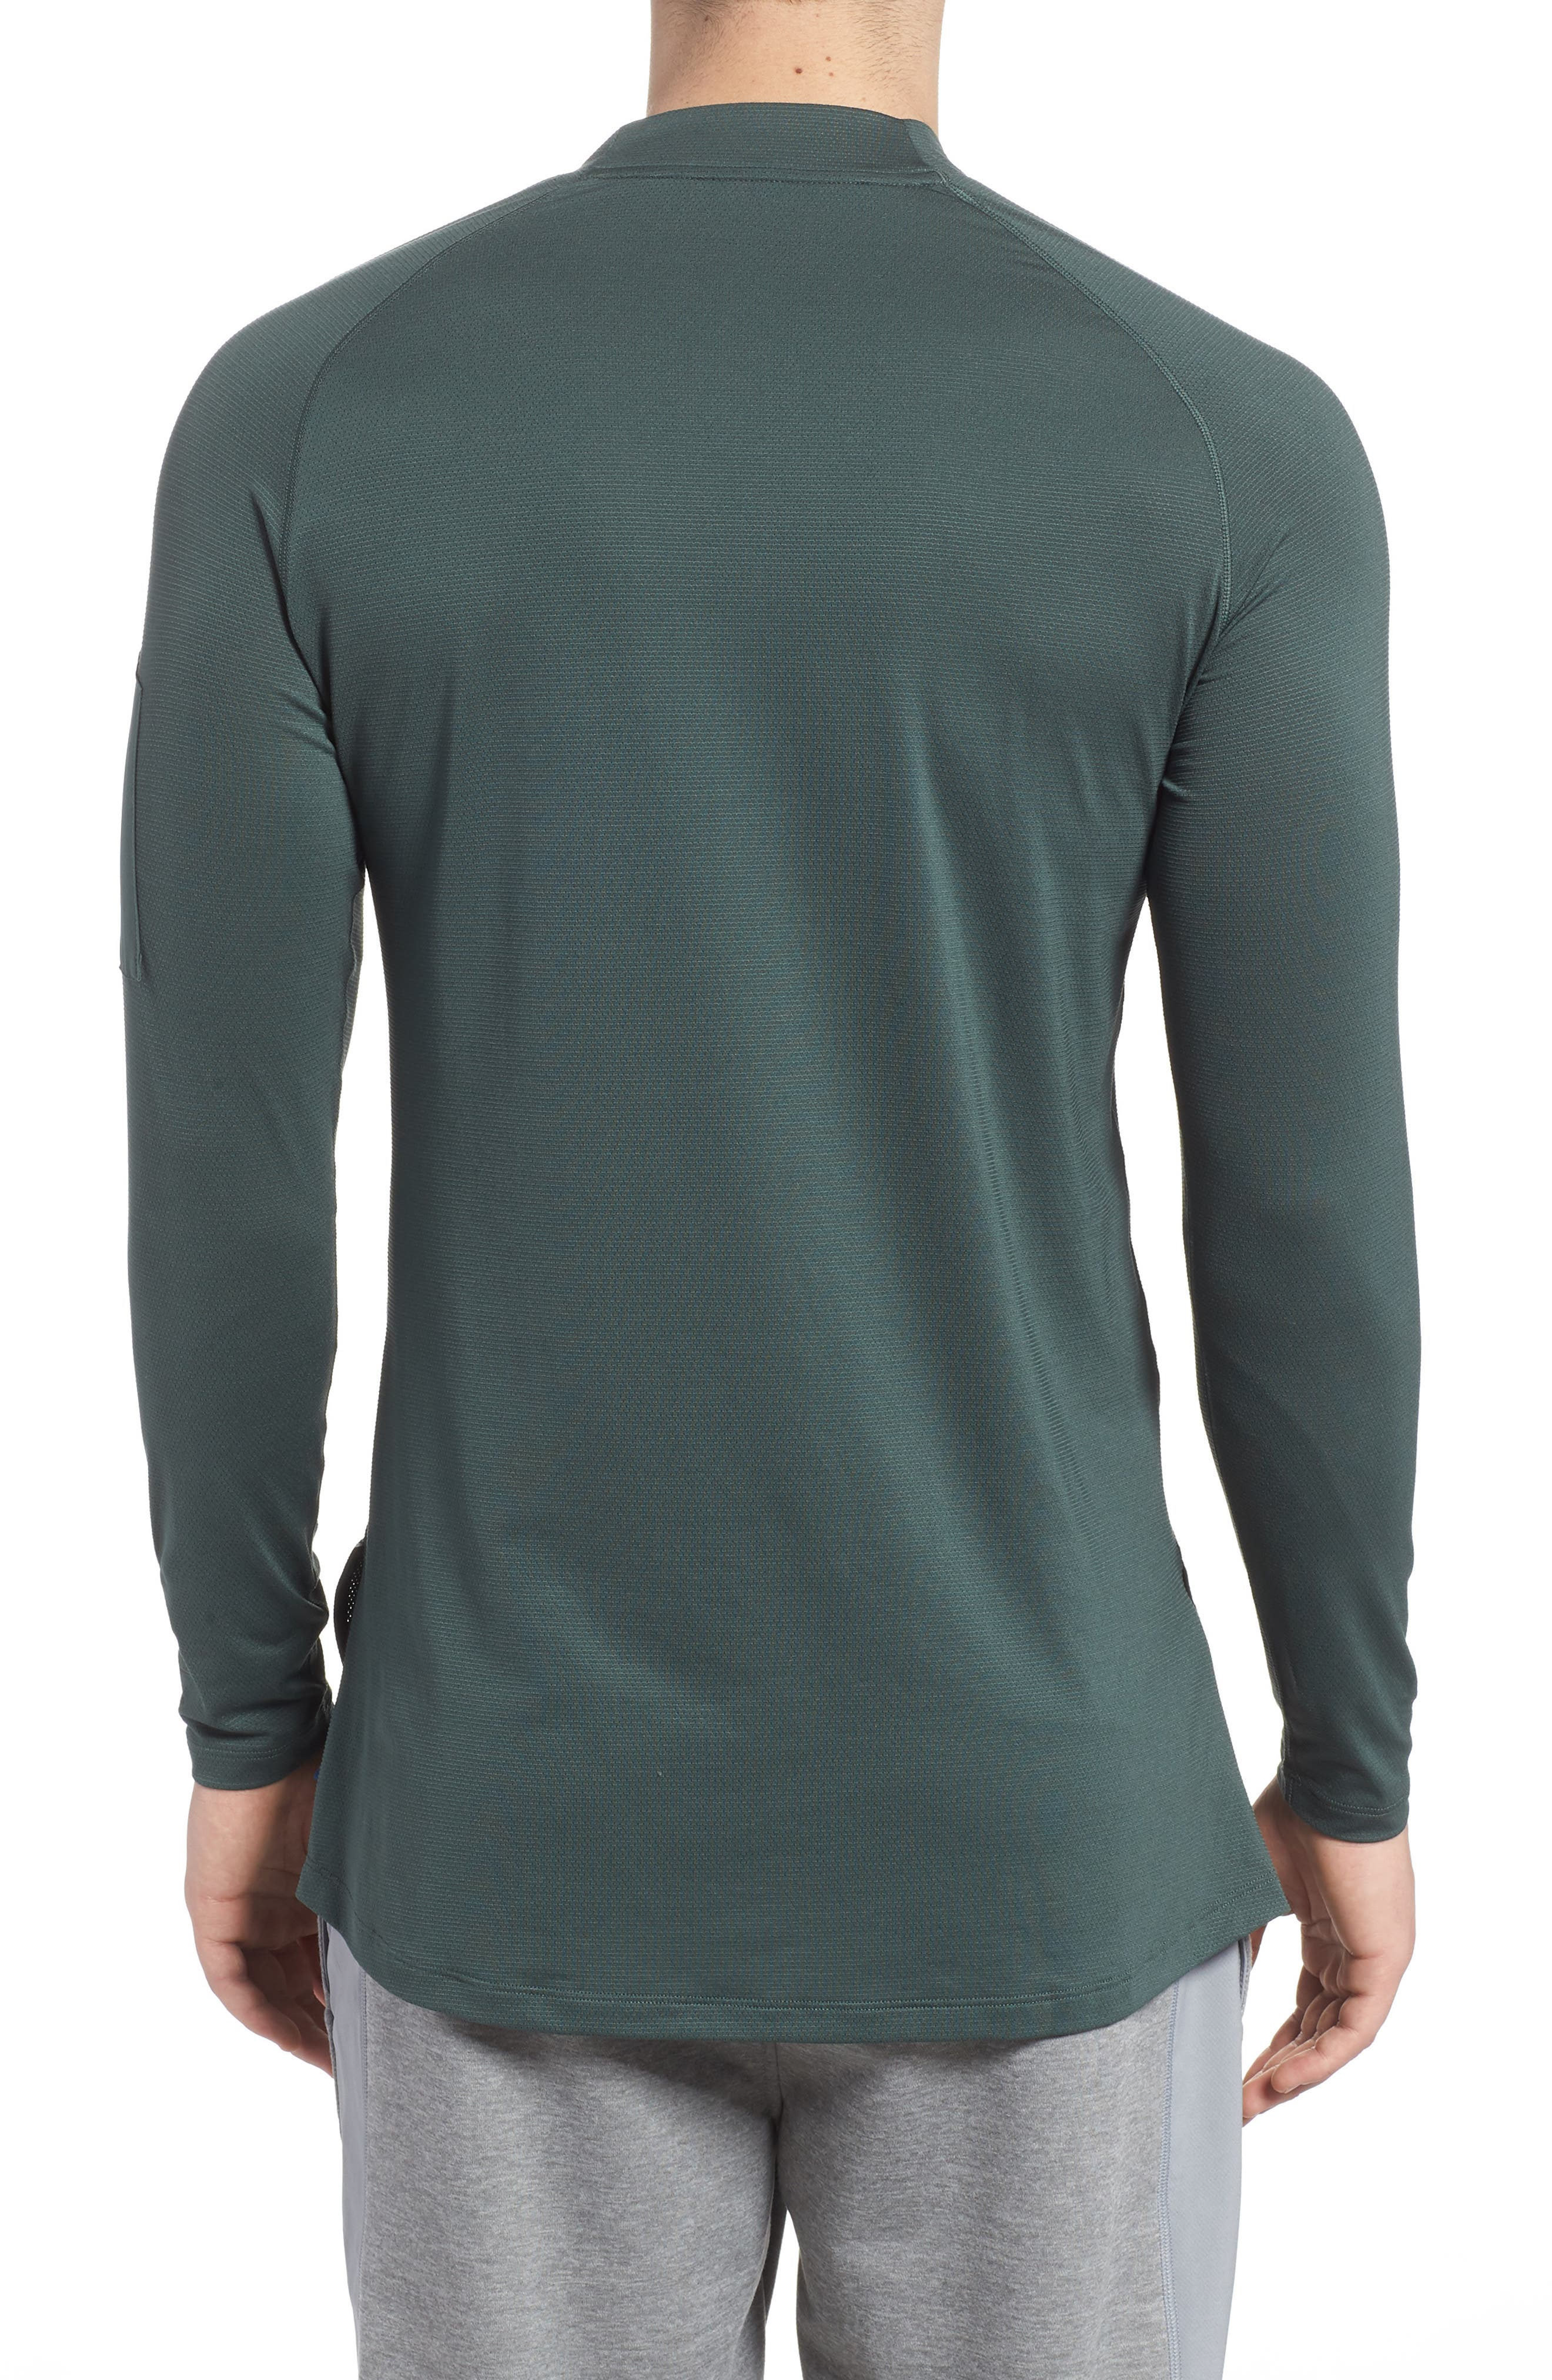 NIKE,                             Pro Fitted Utility Dry Tech Sport Top,                             Alternate thumbnail 2, color,                             VINTAGE GREEN/ BLACK